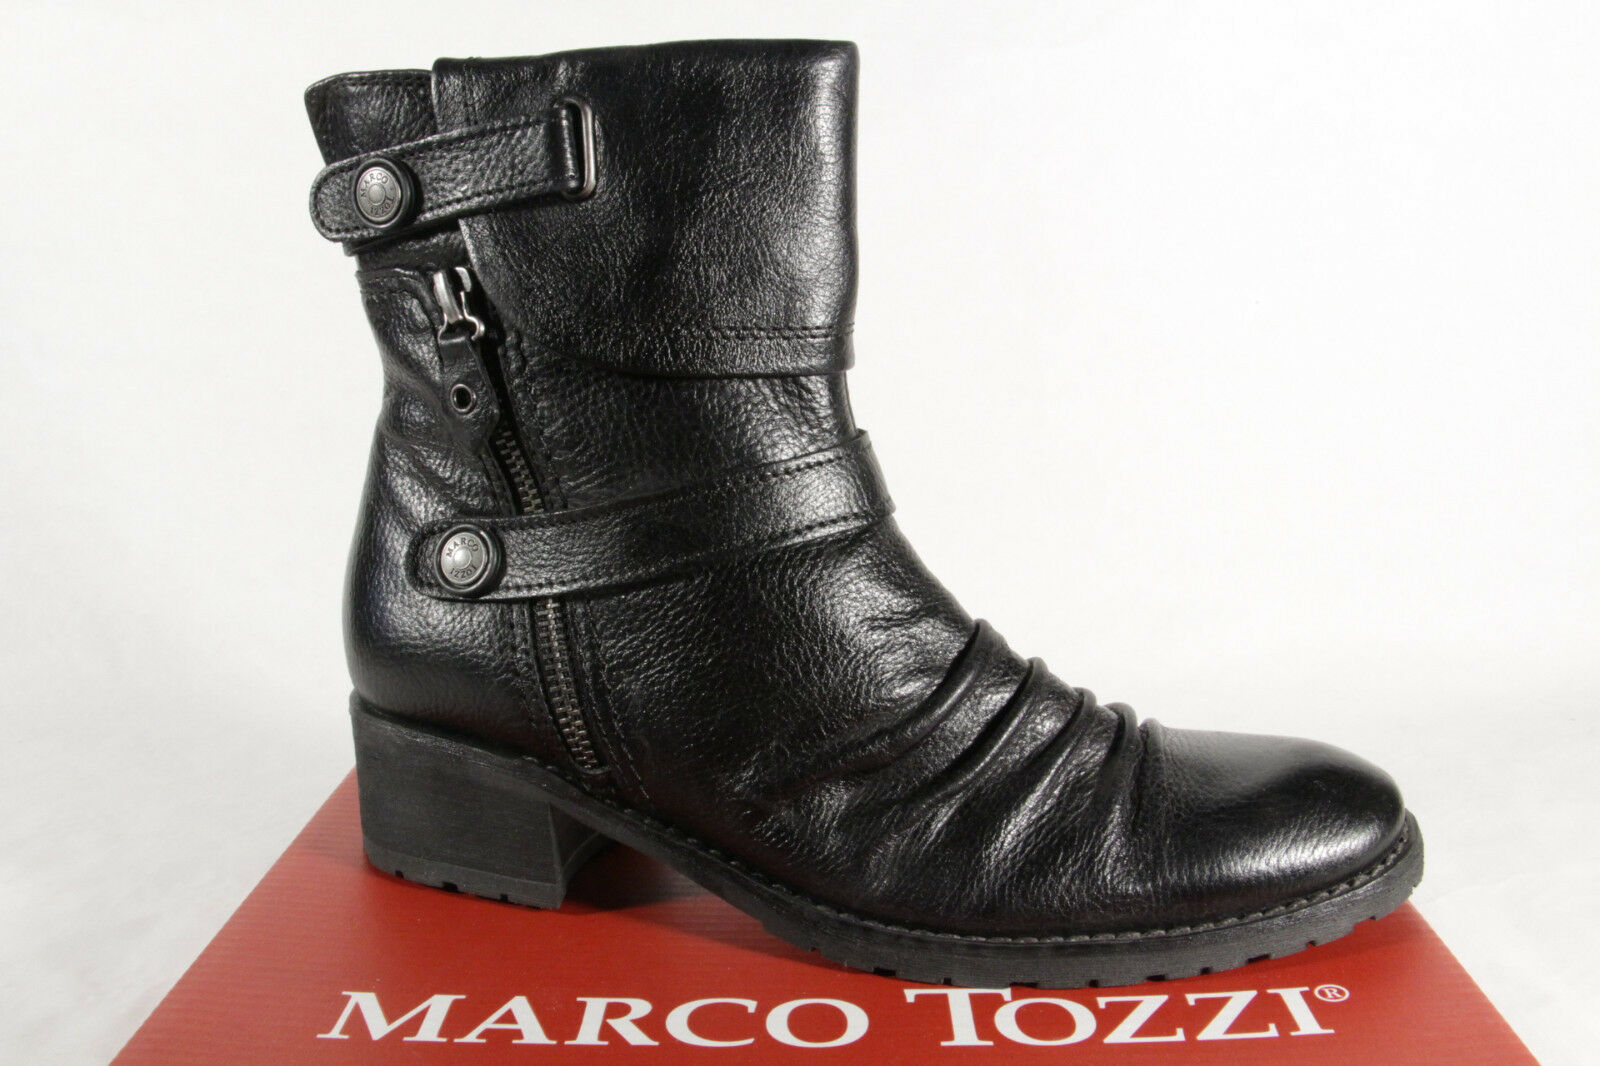 Marco Tozzi Women's Boots Ankle Boots Ankle Boots Genuine Leather New